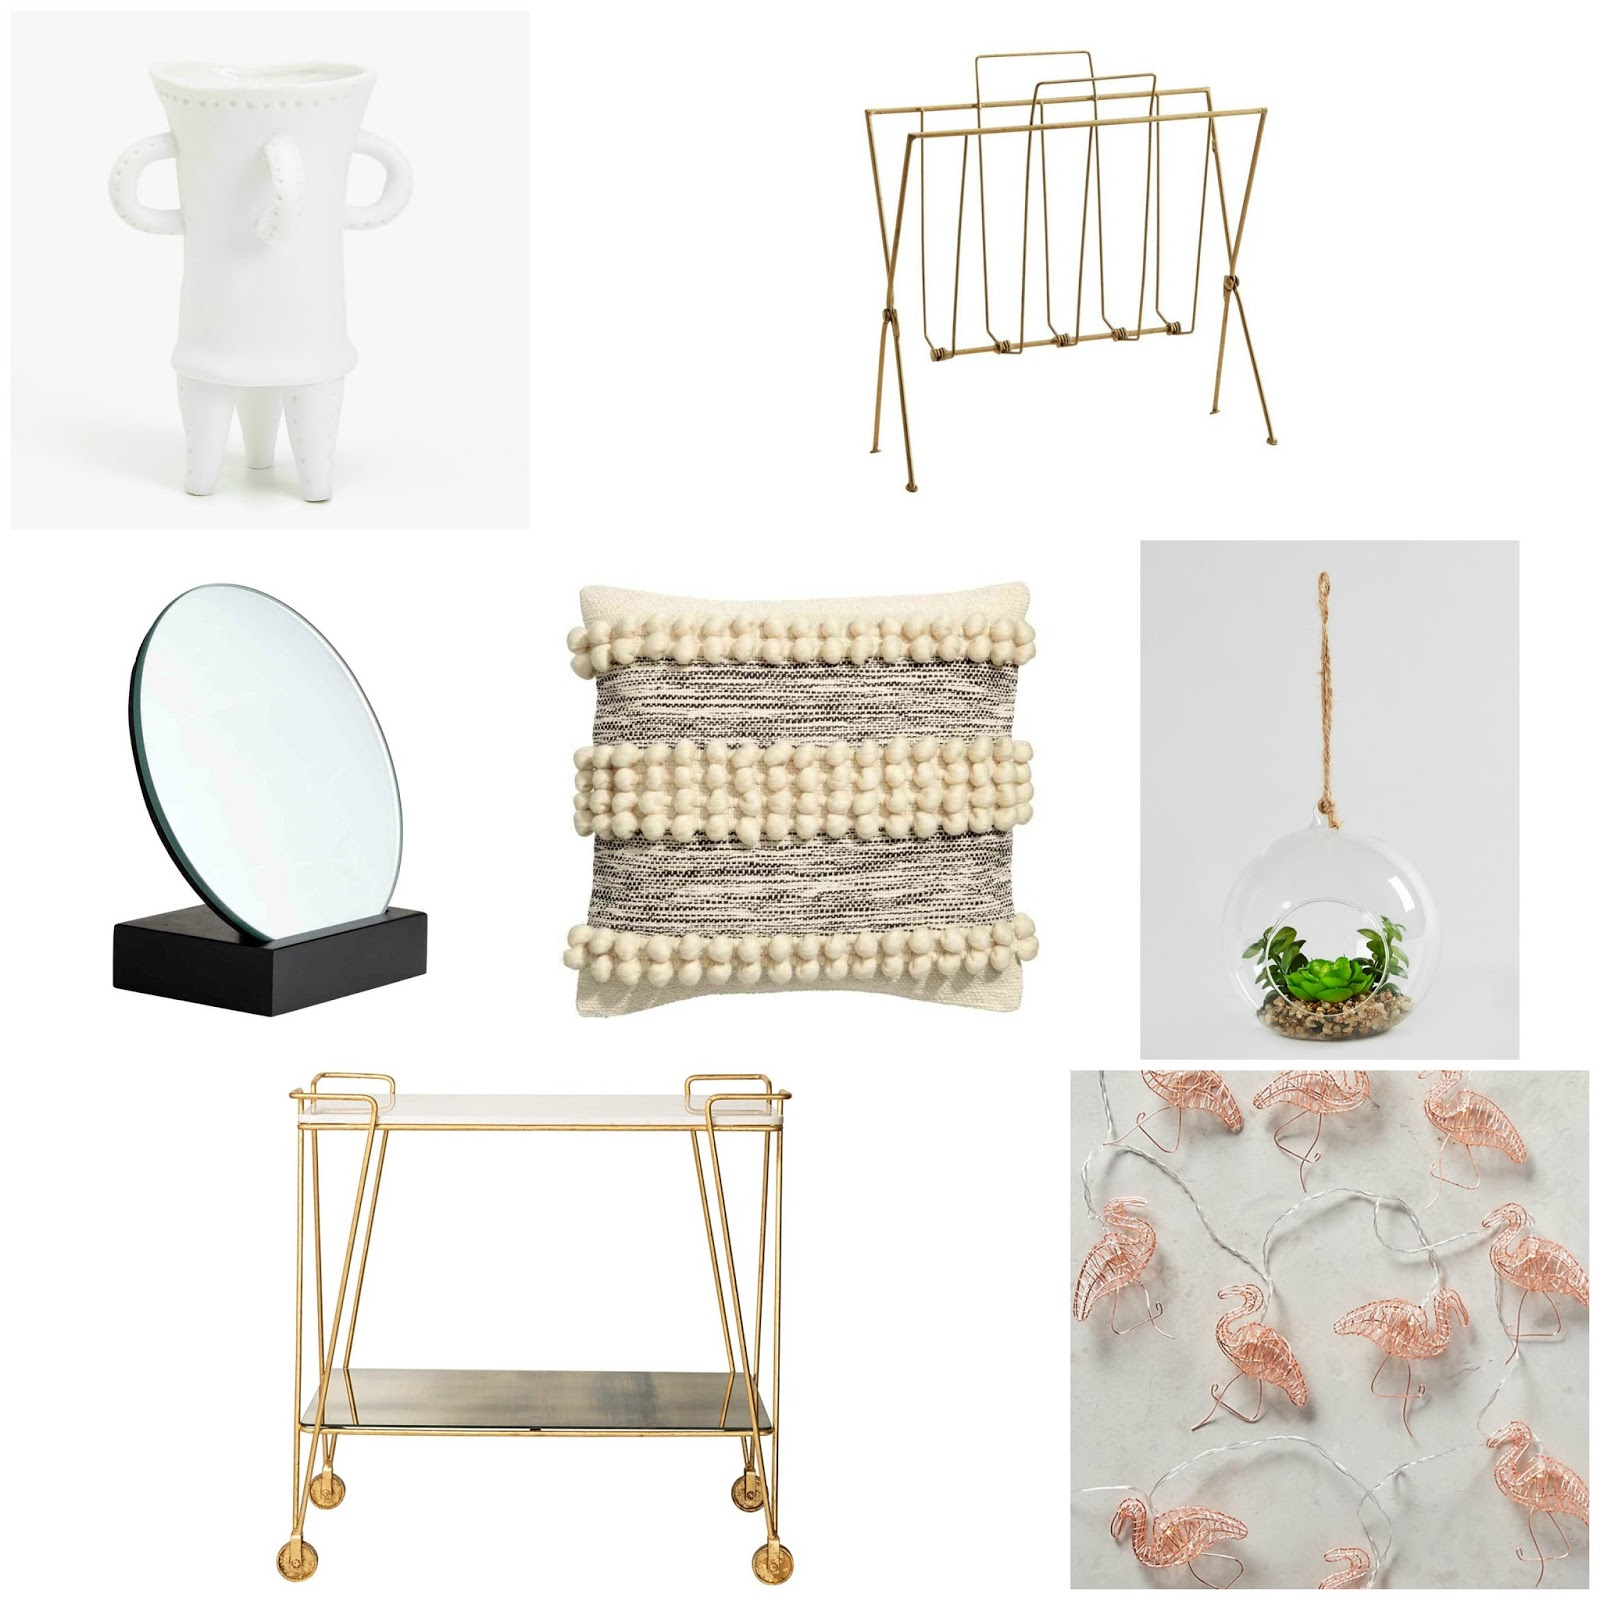 Homeware edit